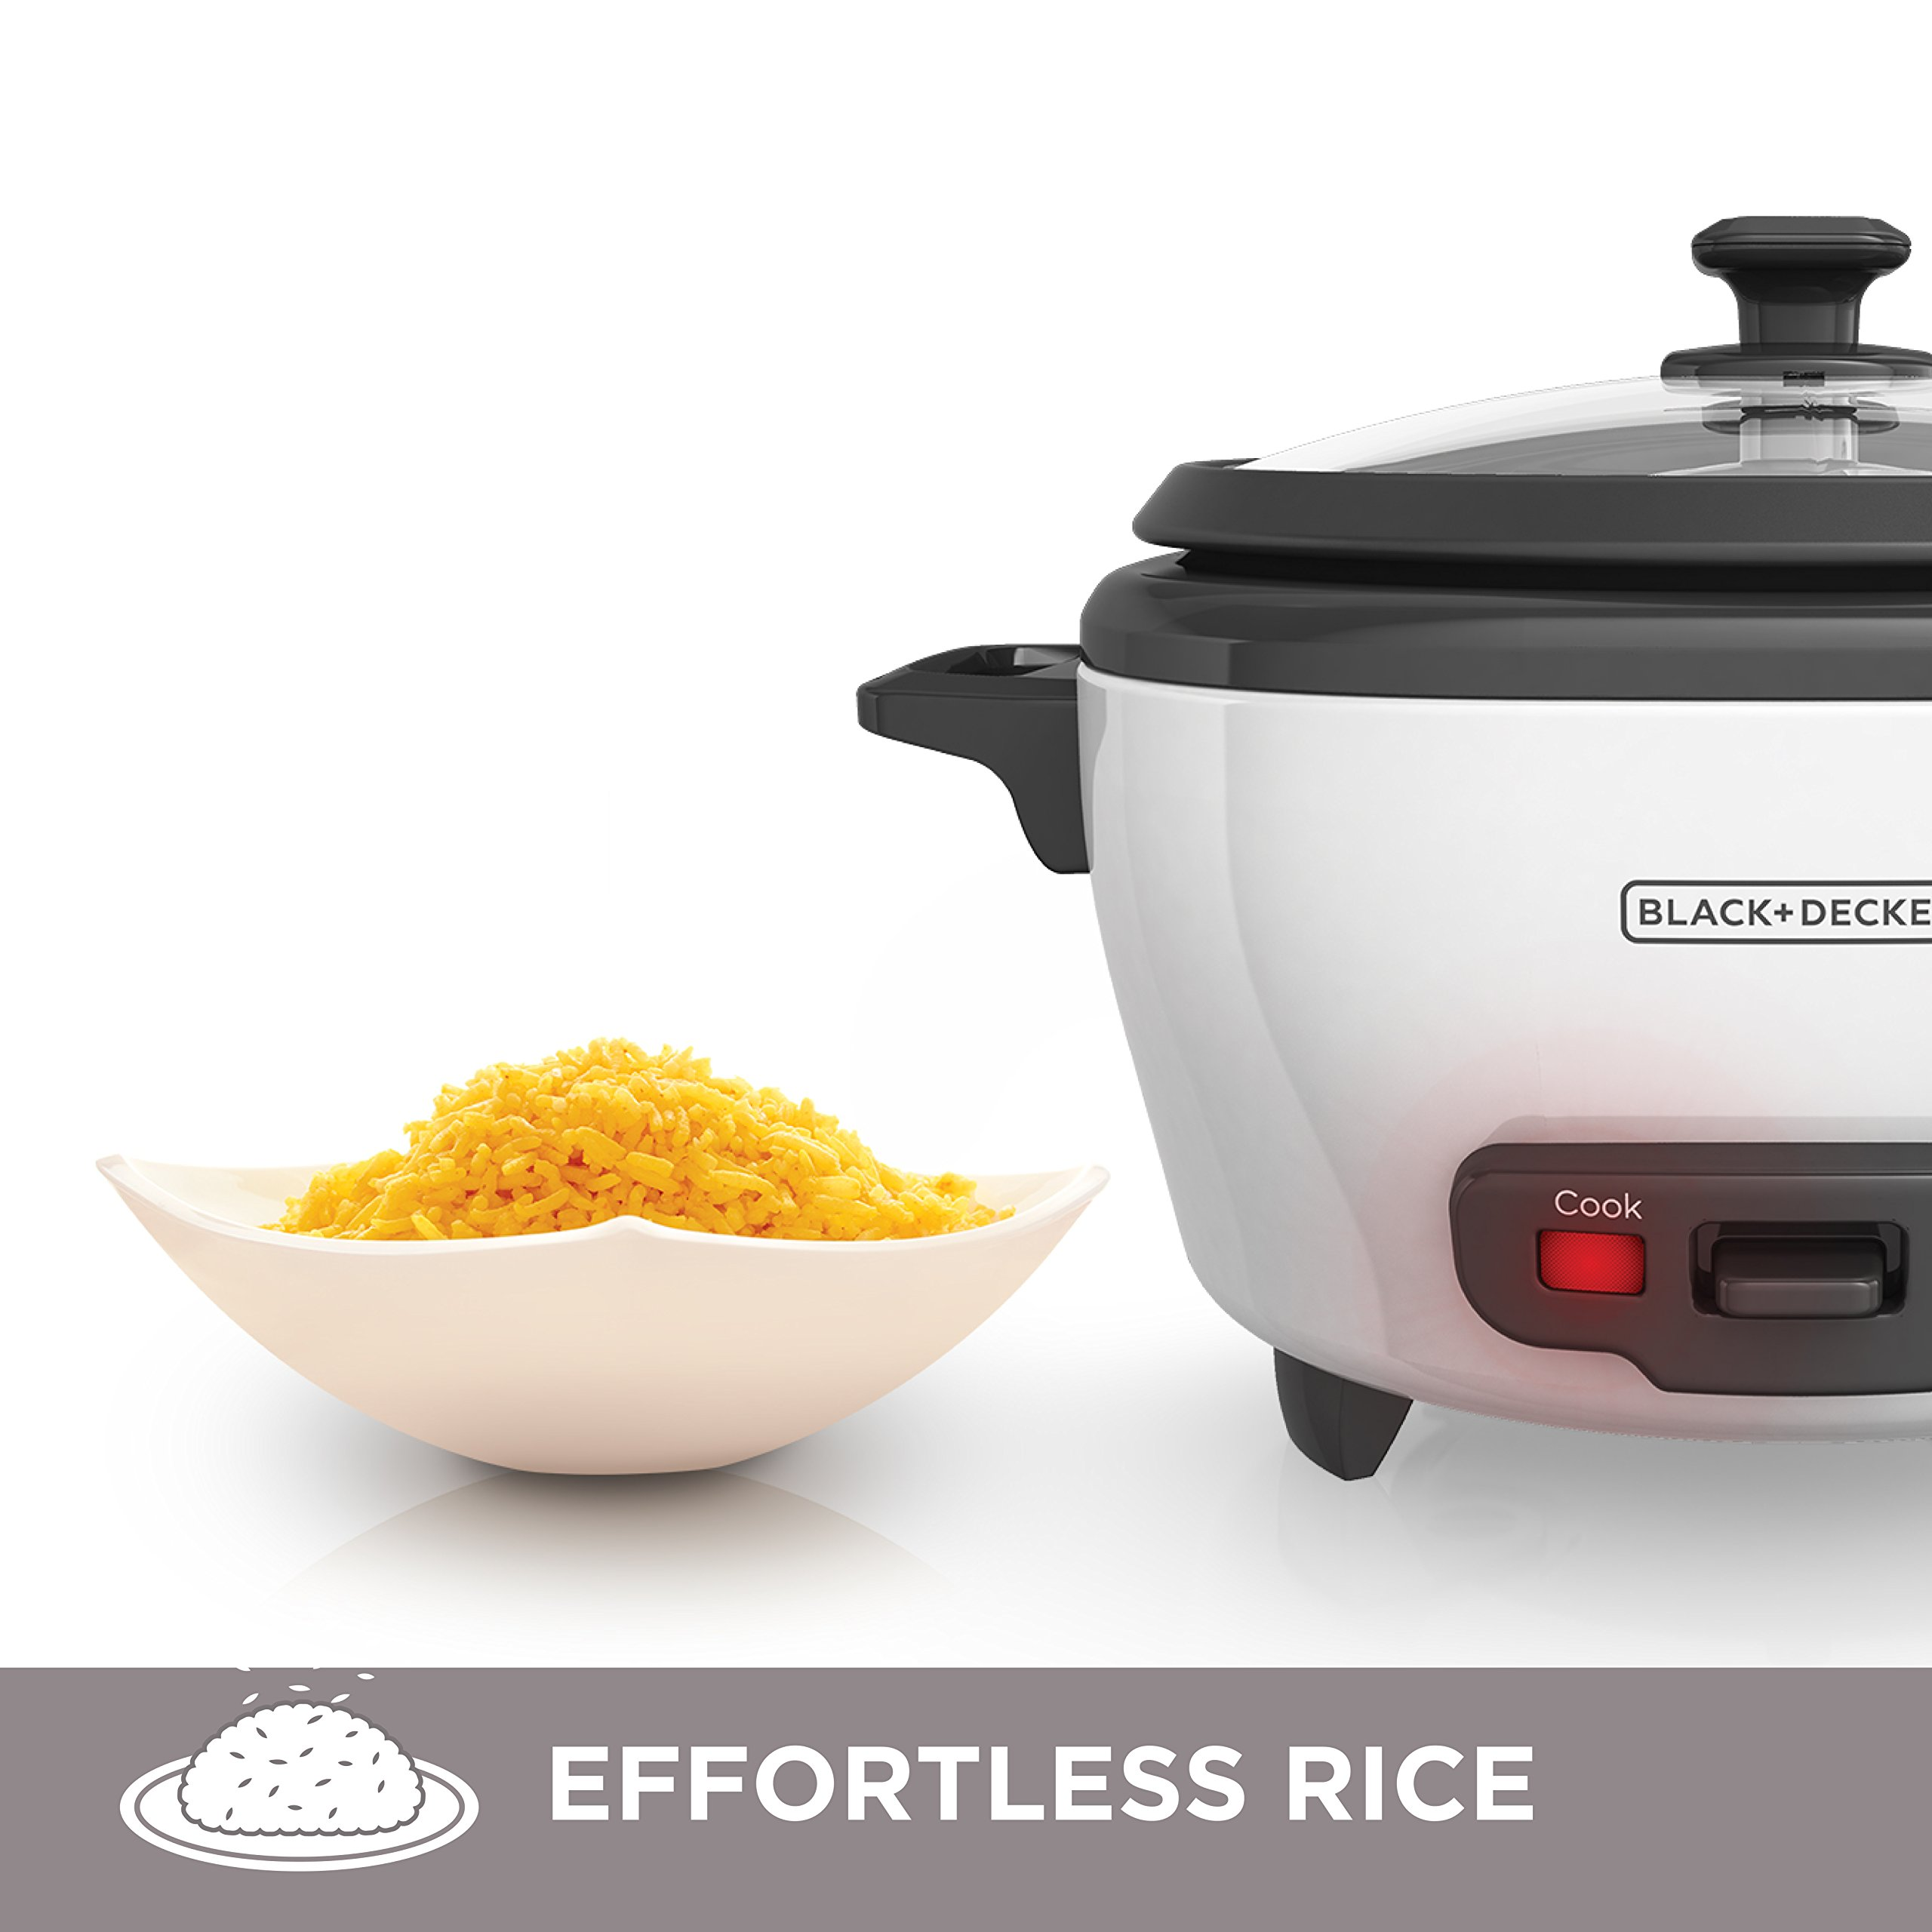 BLACK+DECKER RC506 6-Cup Cooked/3-Cup Uncooked Rice Cooker and Food Steamer, White by BLACK+DECKER (Image #4)